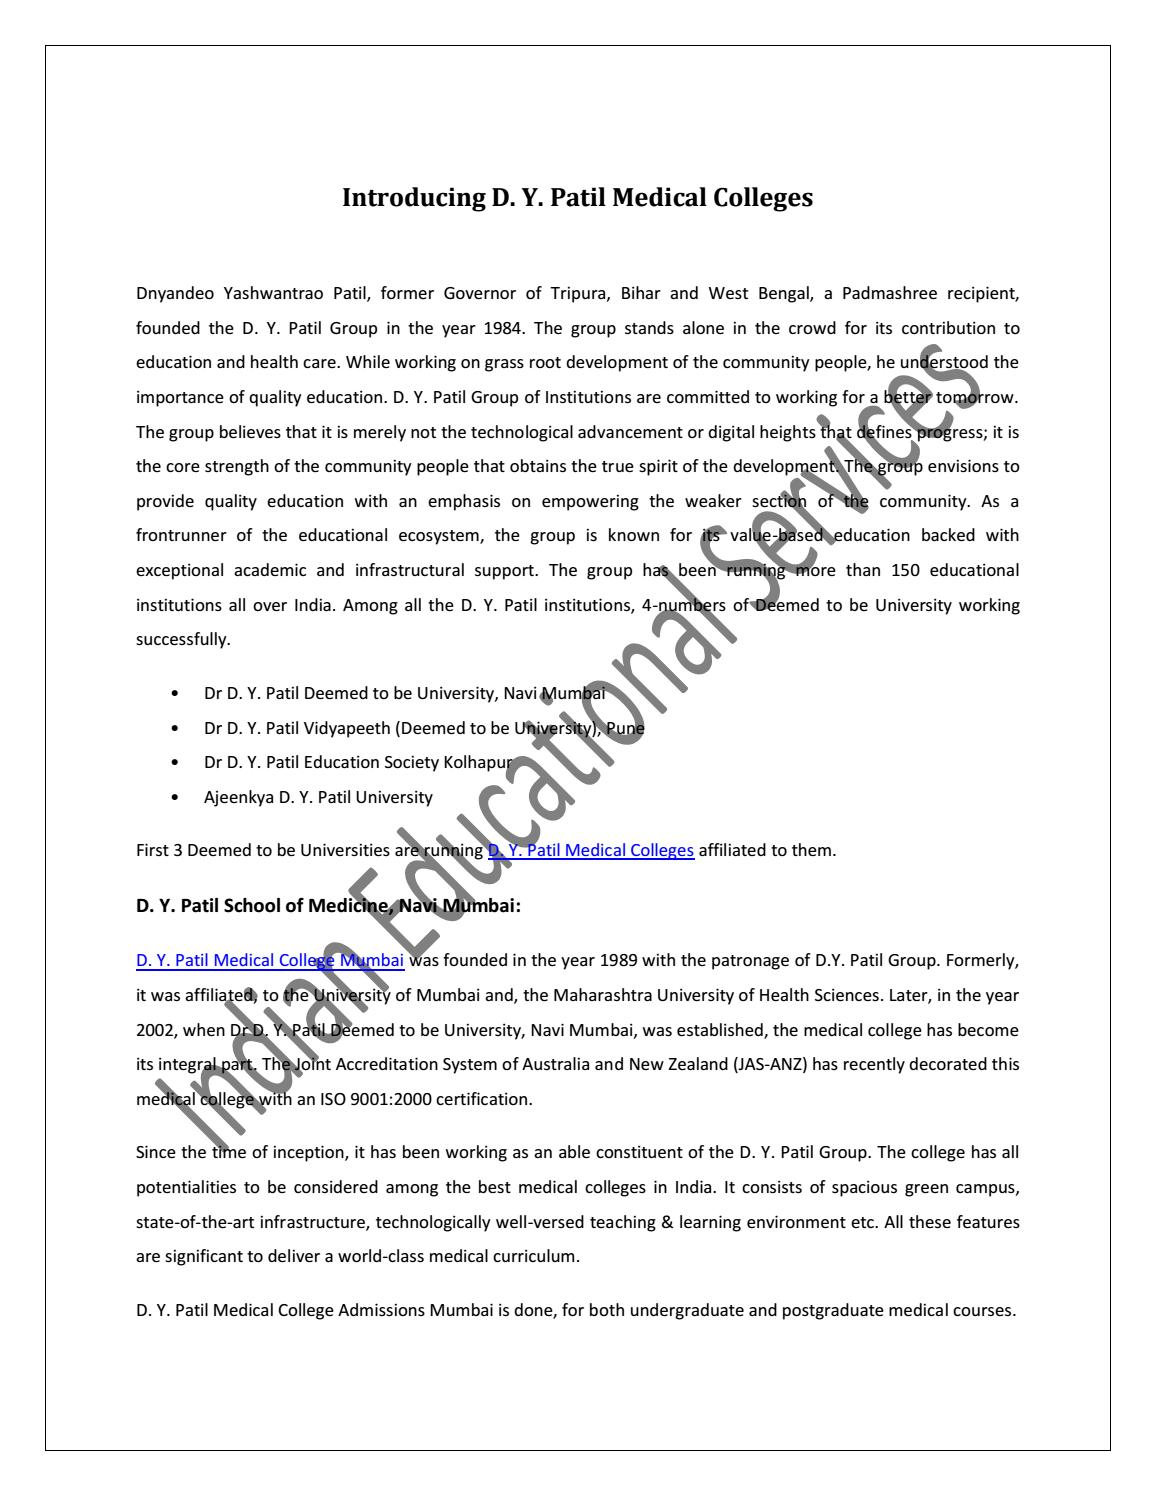 Introducing D  Y  Patil Medical Colleges by iesonline - issuu